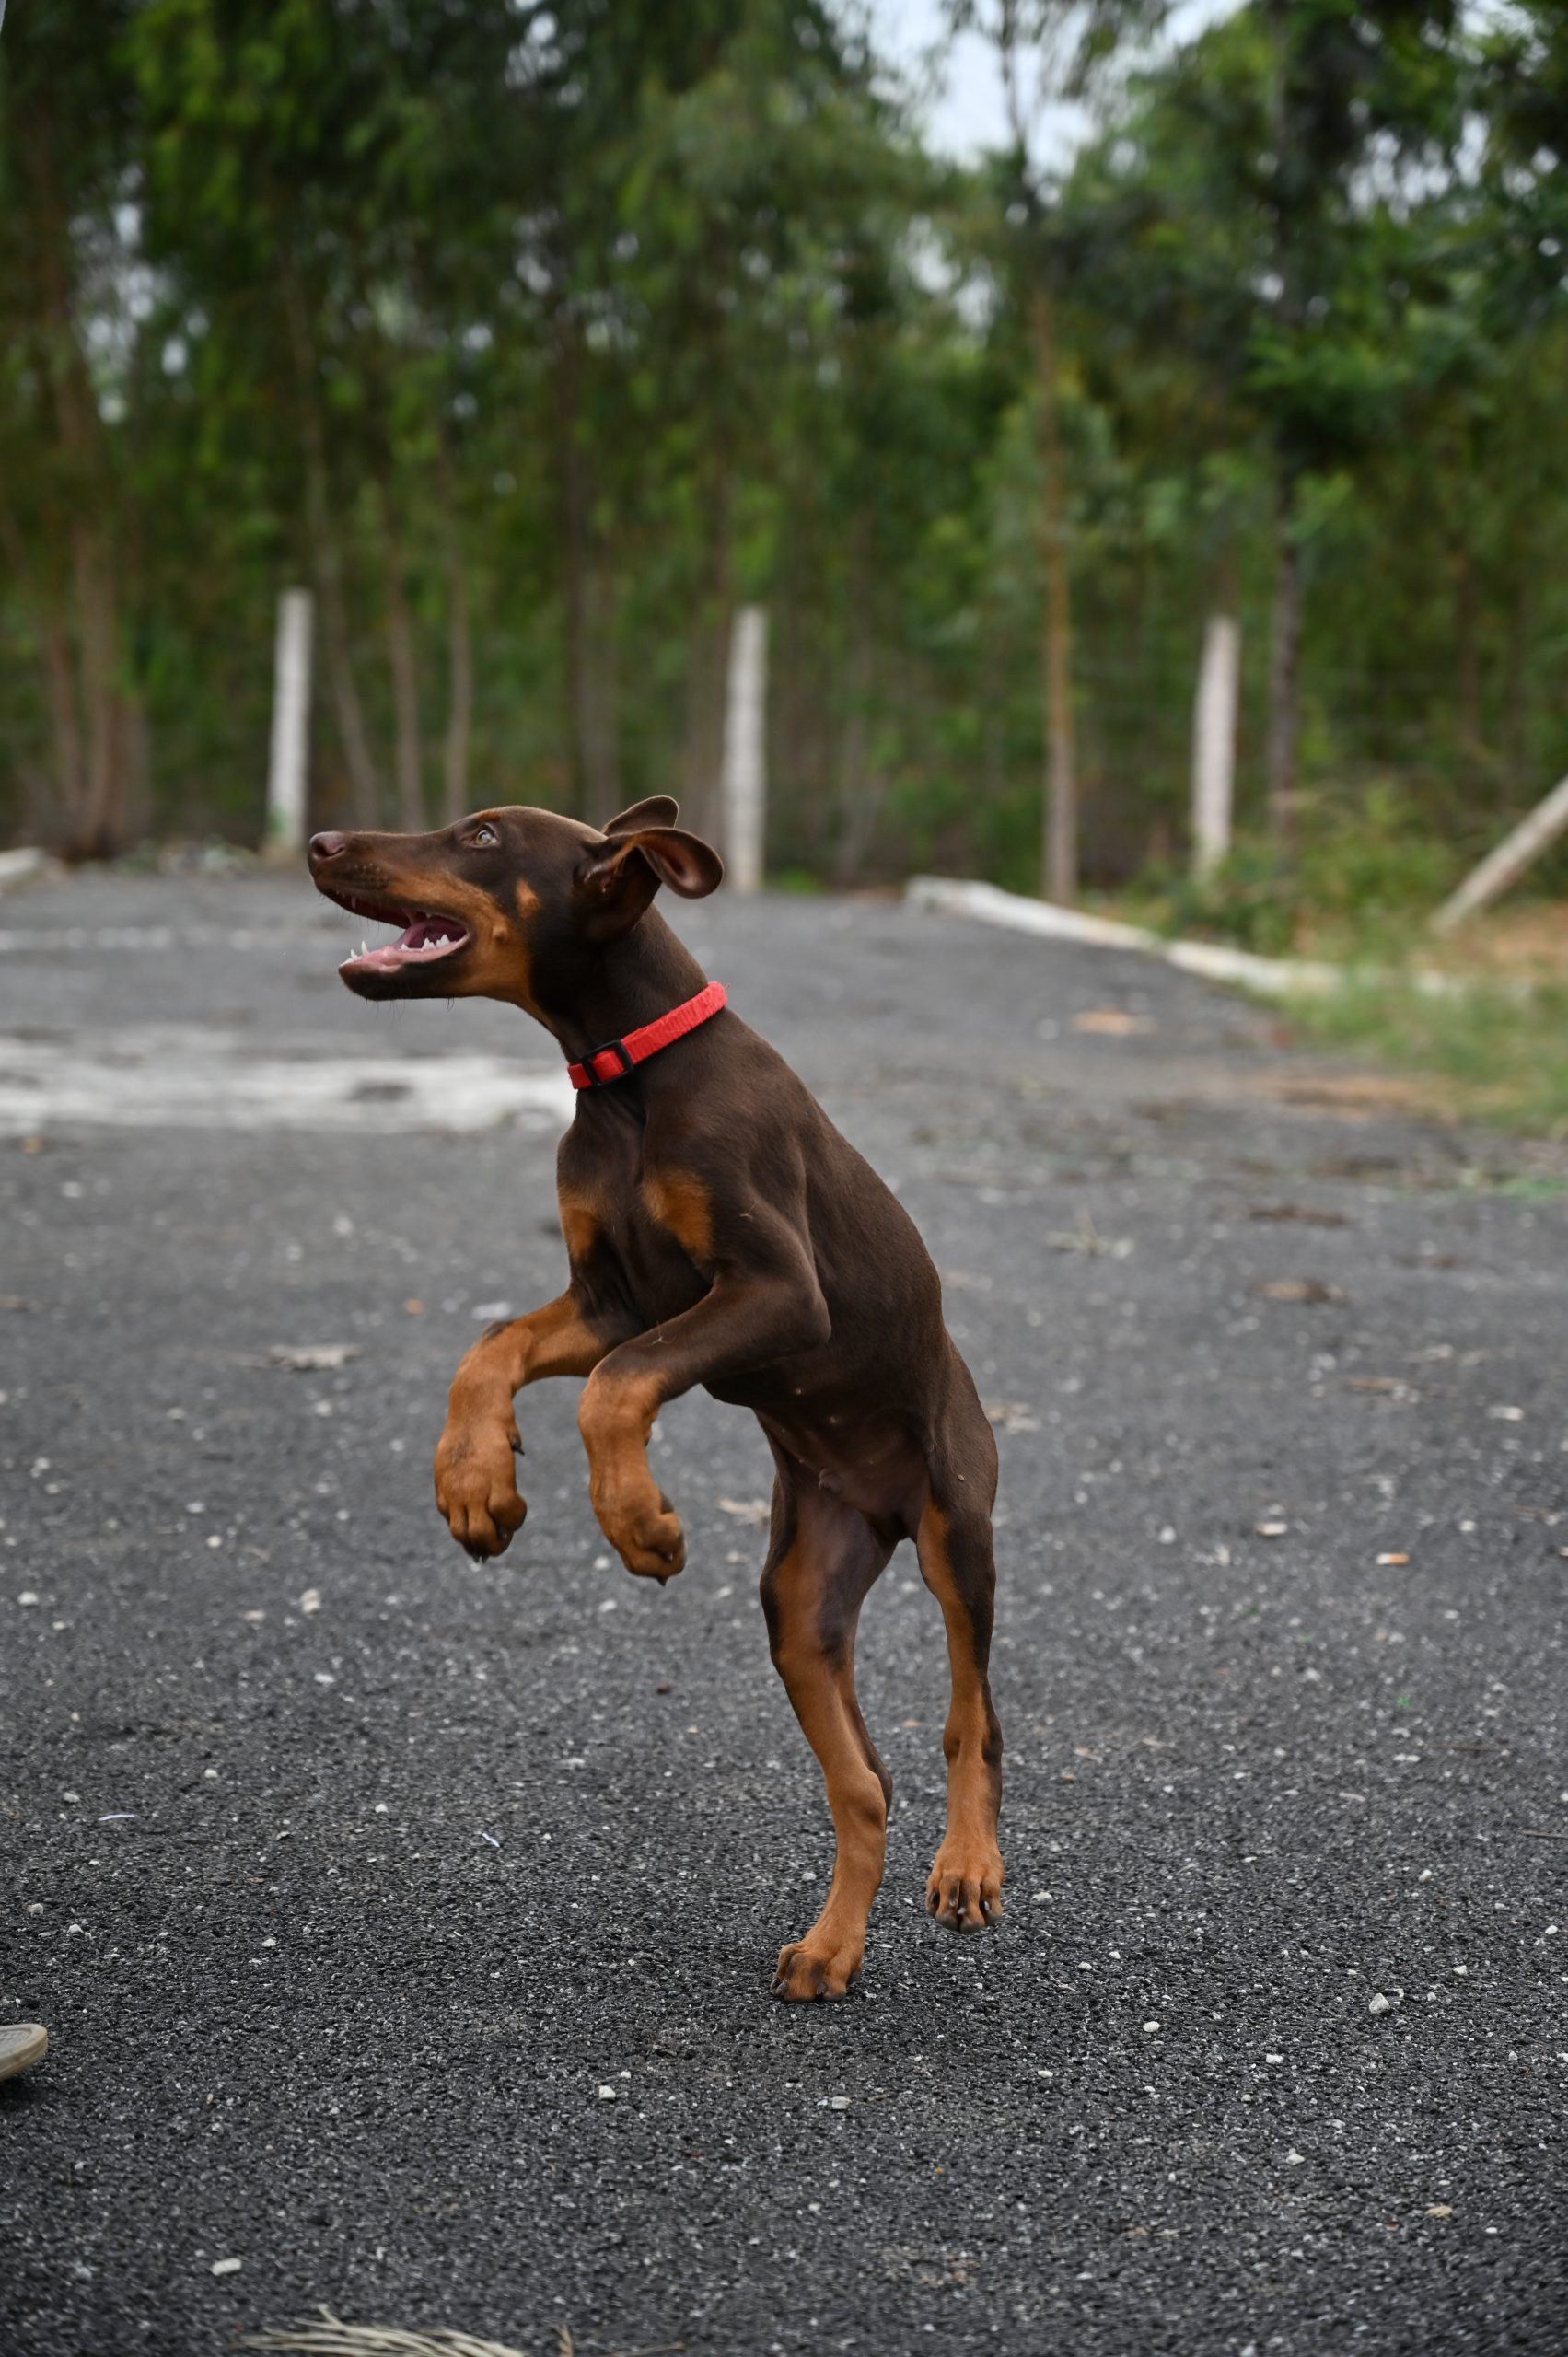 a dog playing on the street